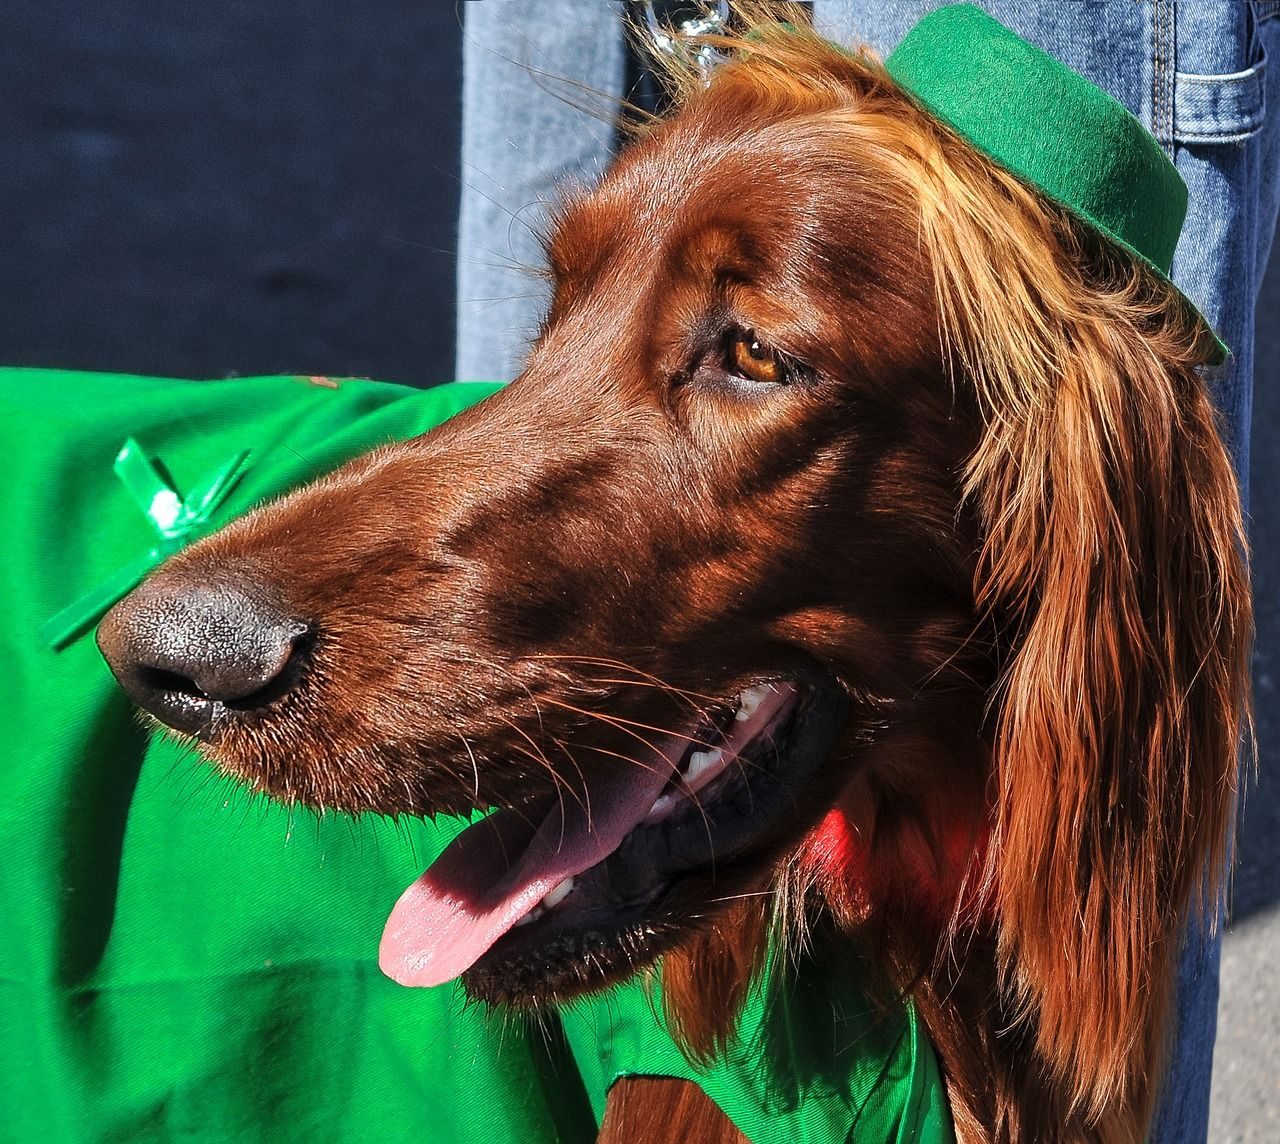 A dog takes part in a St. Patrick's Day parade